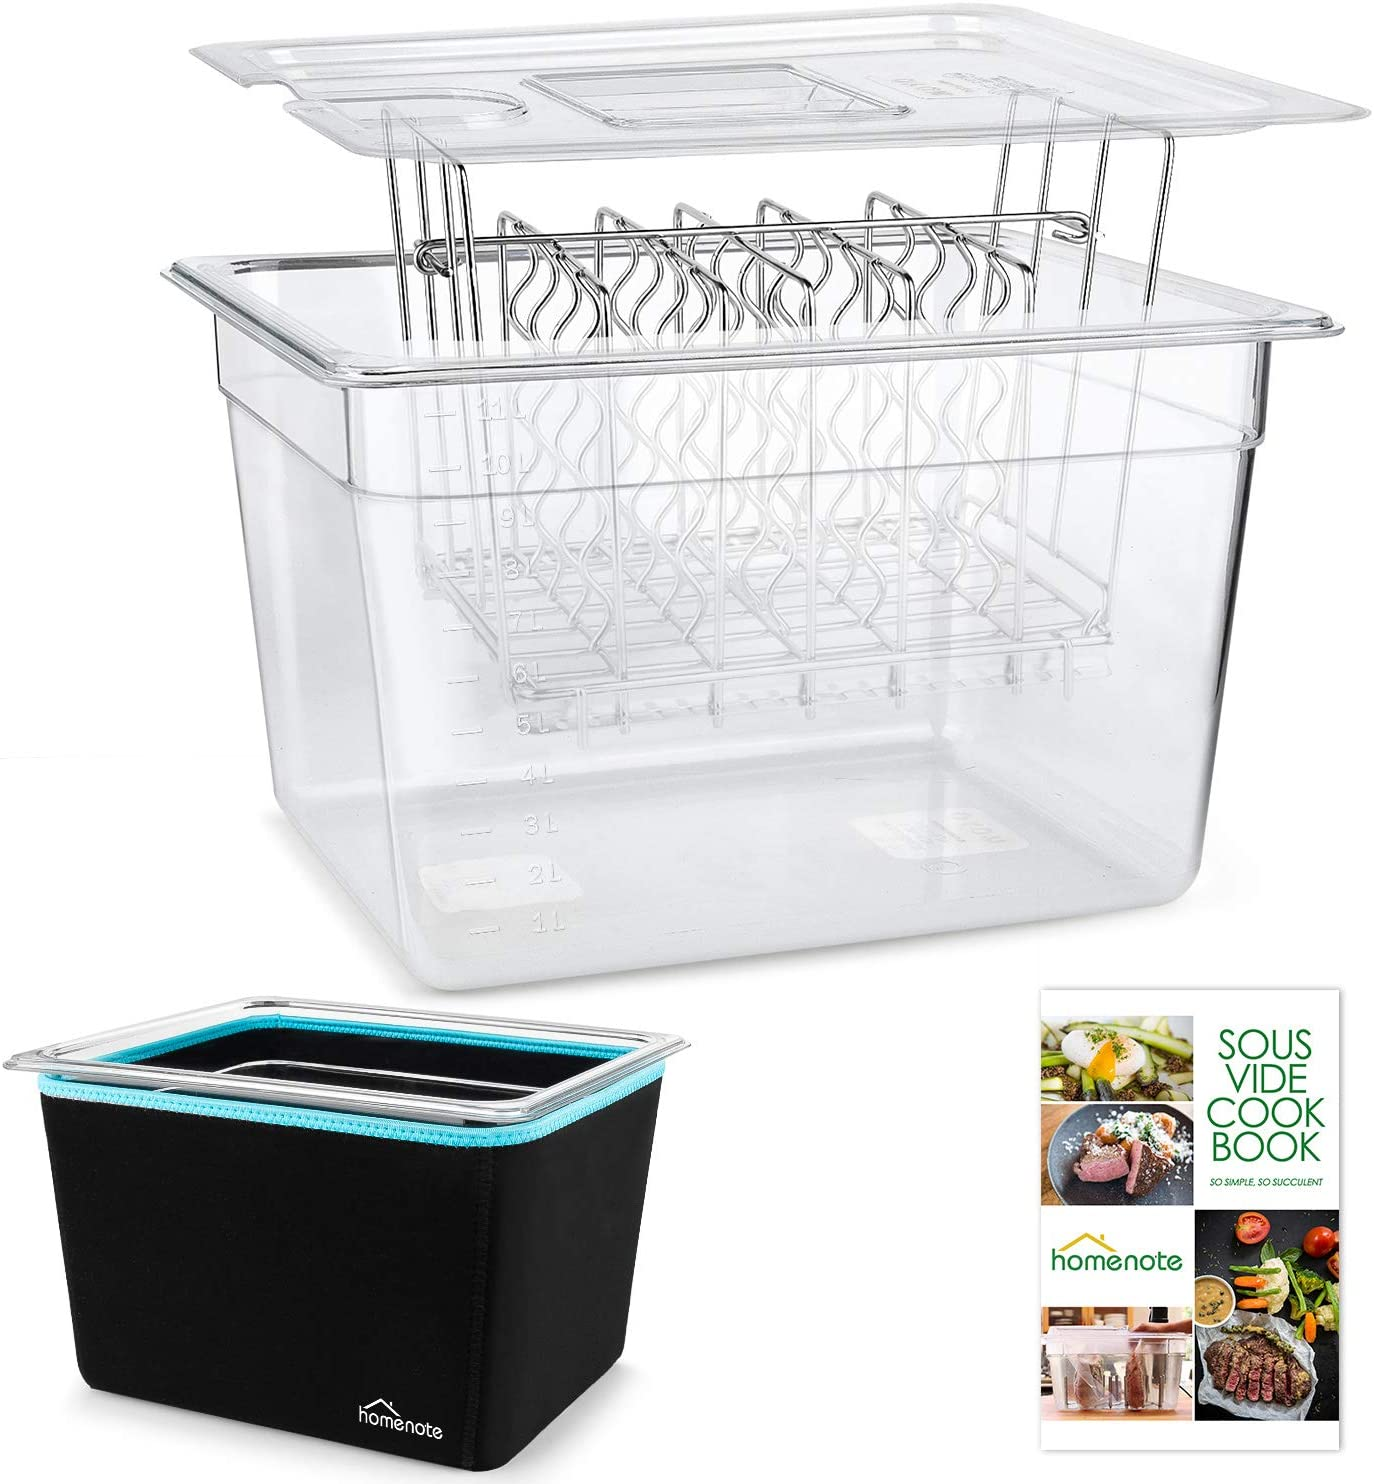 HOMENOTE Sous Vide Container 12 Quart with Lid & Rack and Sleeve - BPA Free Complete Sous Vide Accessories Kit with Cookbook For Anova and Most Sous Vide Cookers